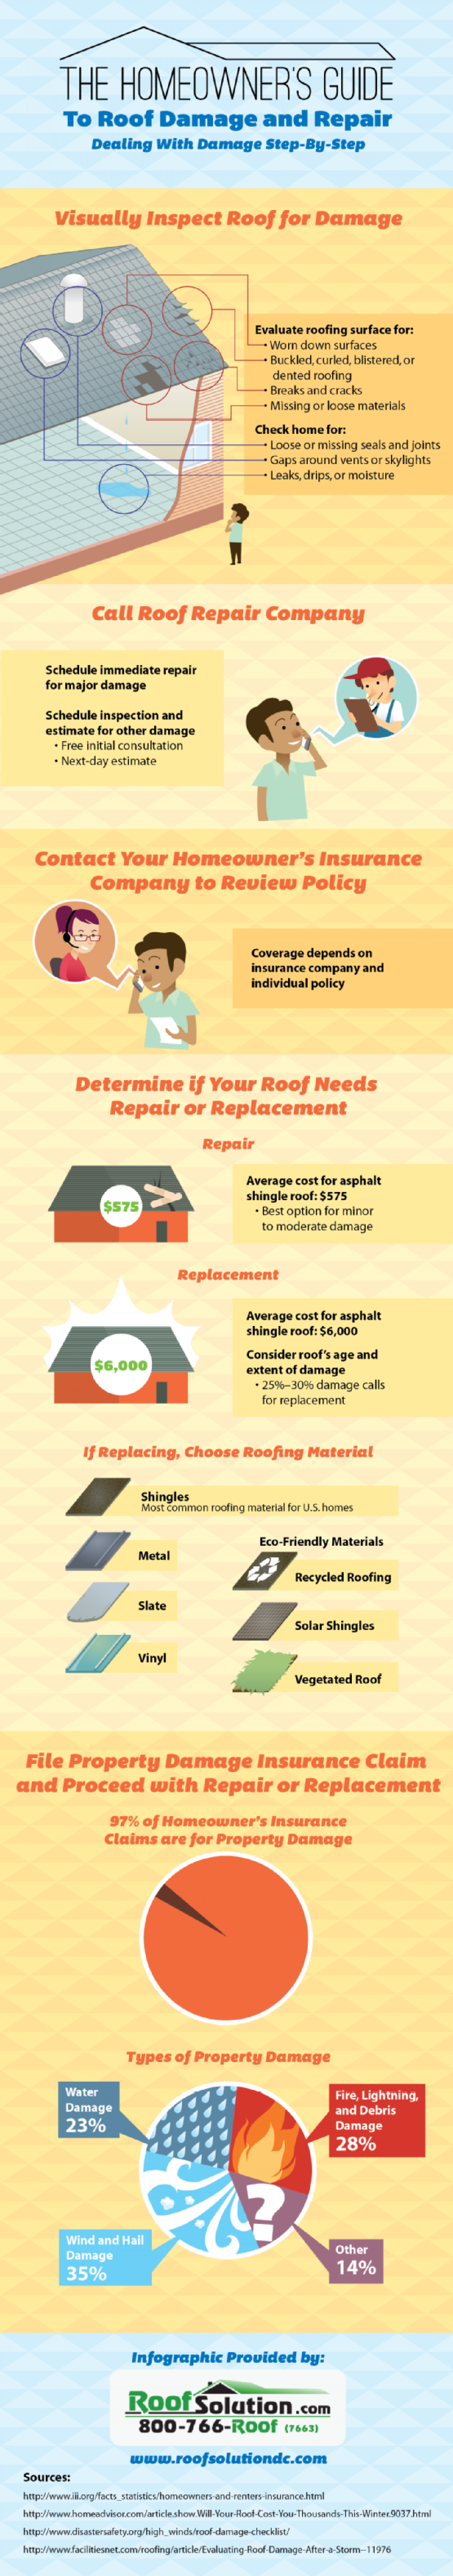 Homeowner's Guide to Roof Damage and Repair Infographic